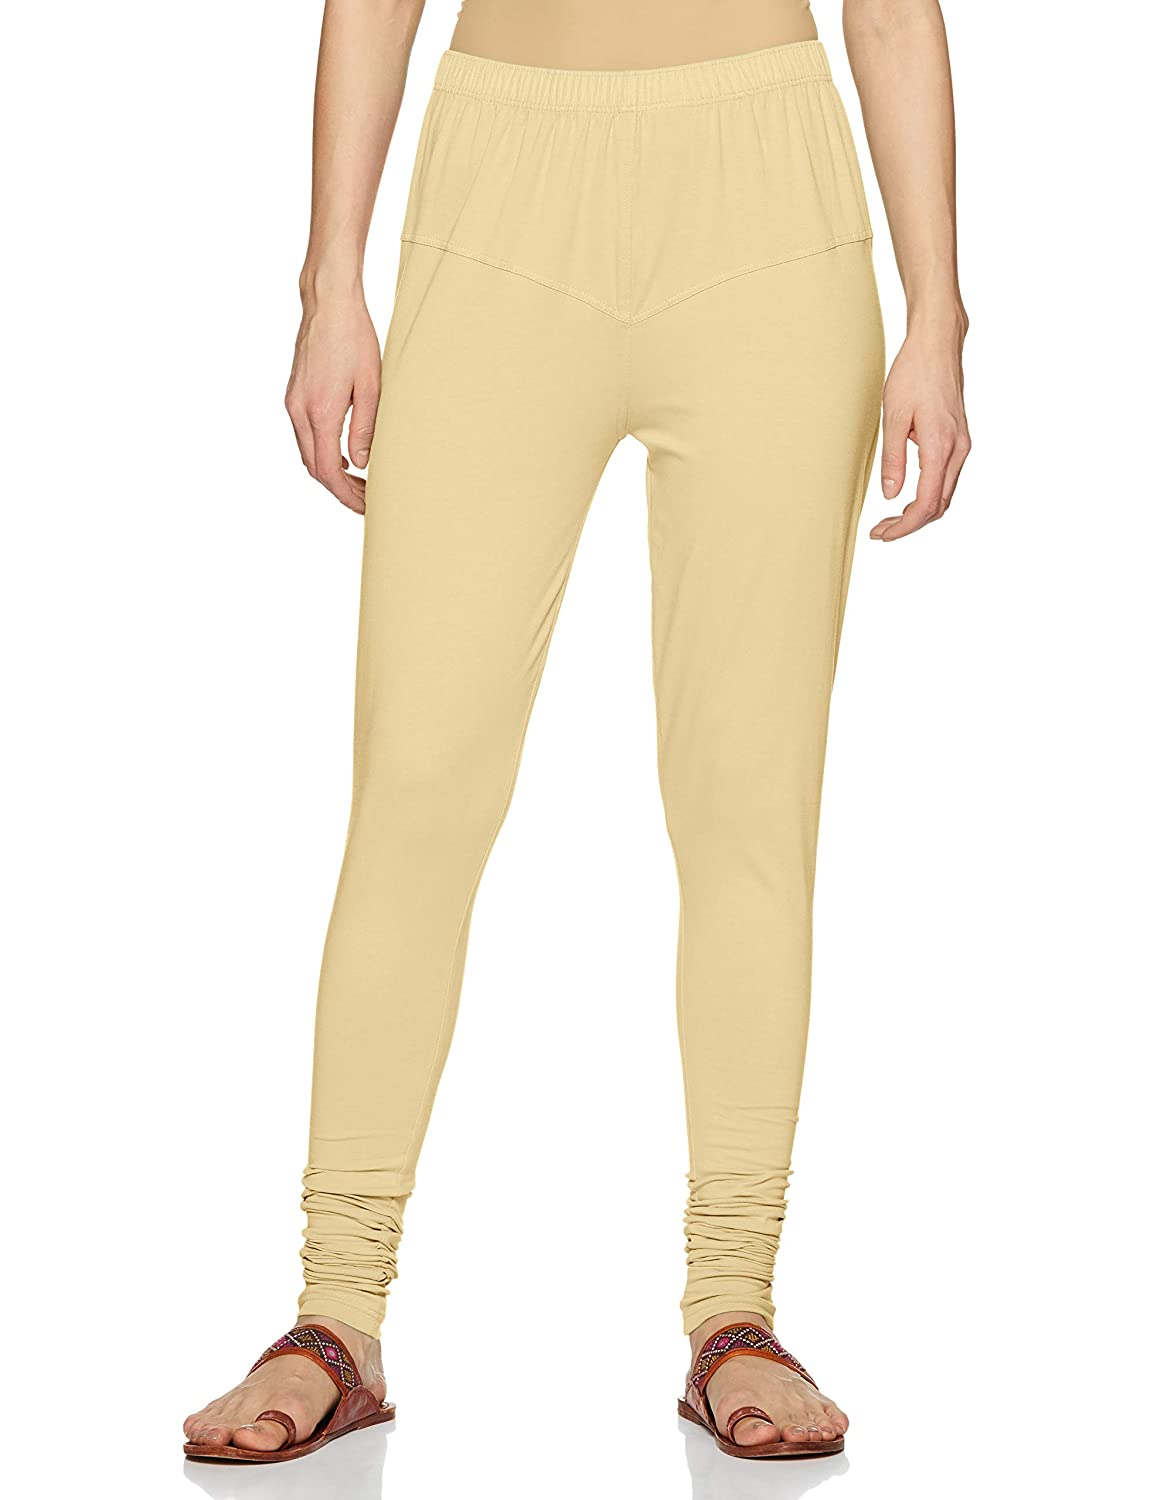 LUX LYRA Women's Leggings Silk_77_Cream_Free Size